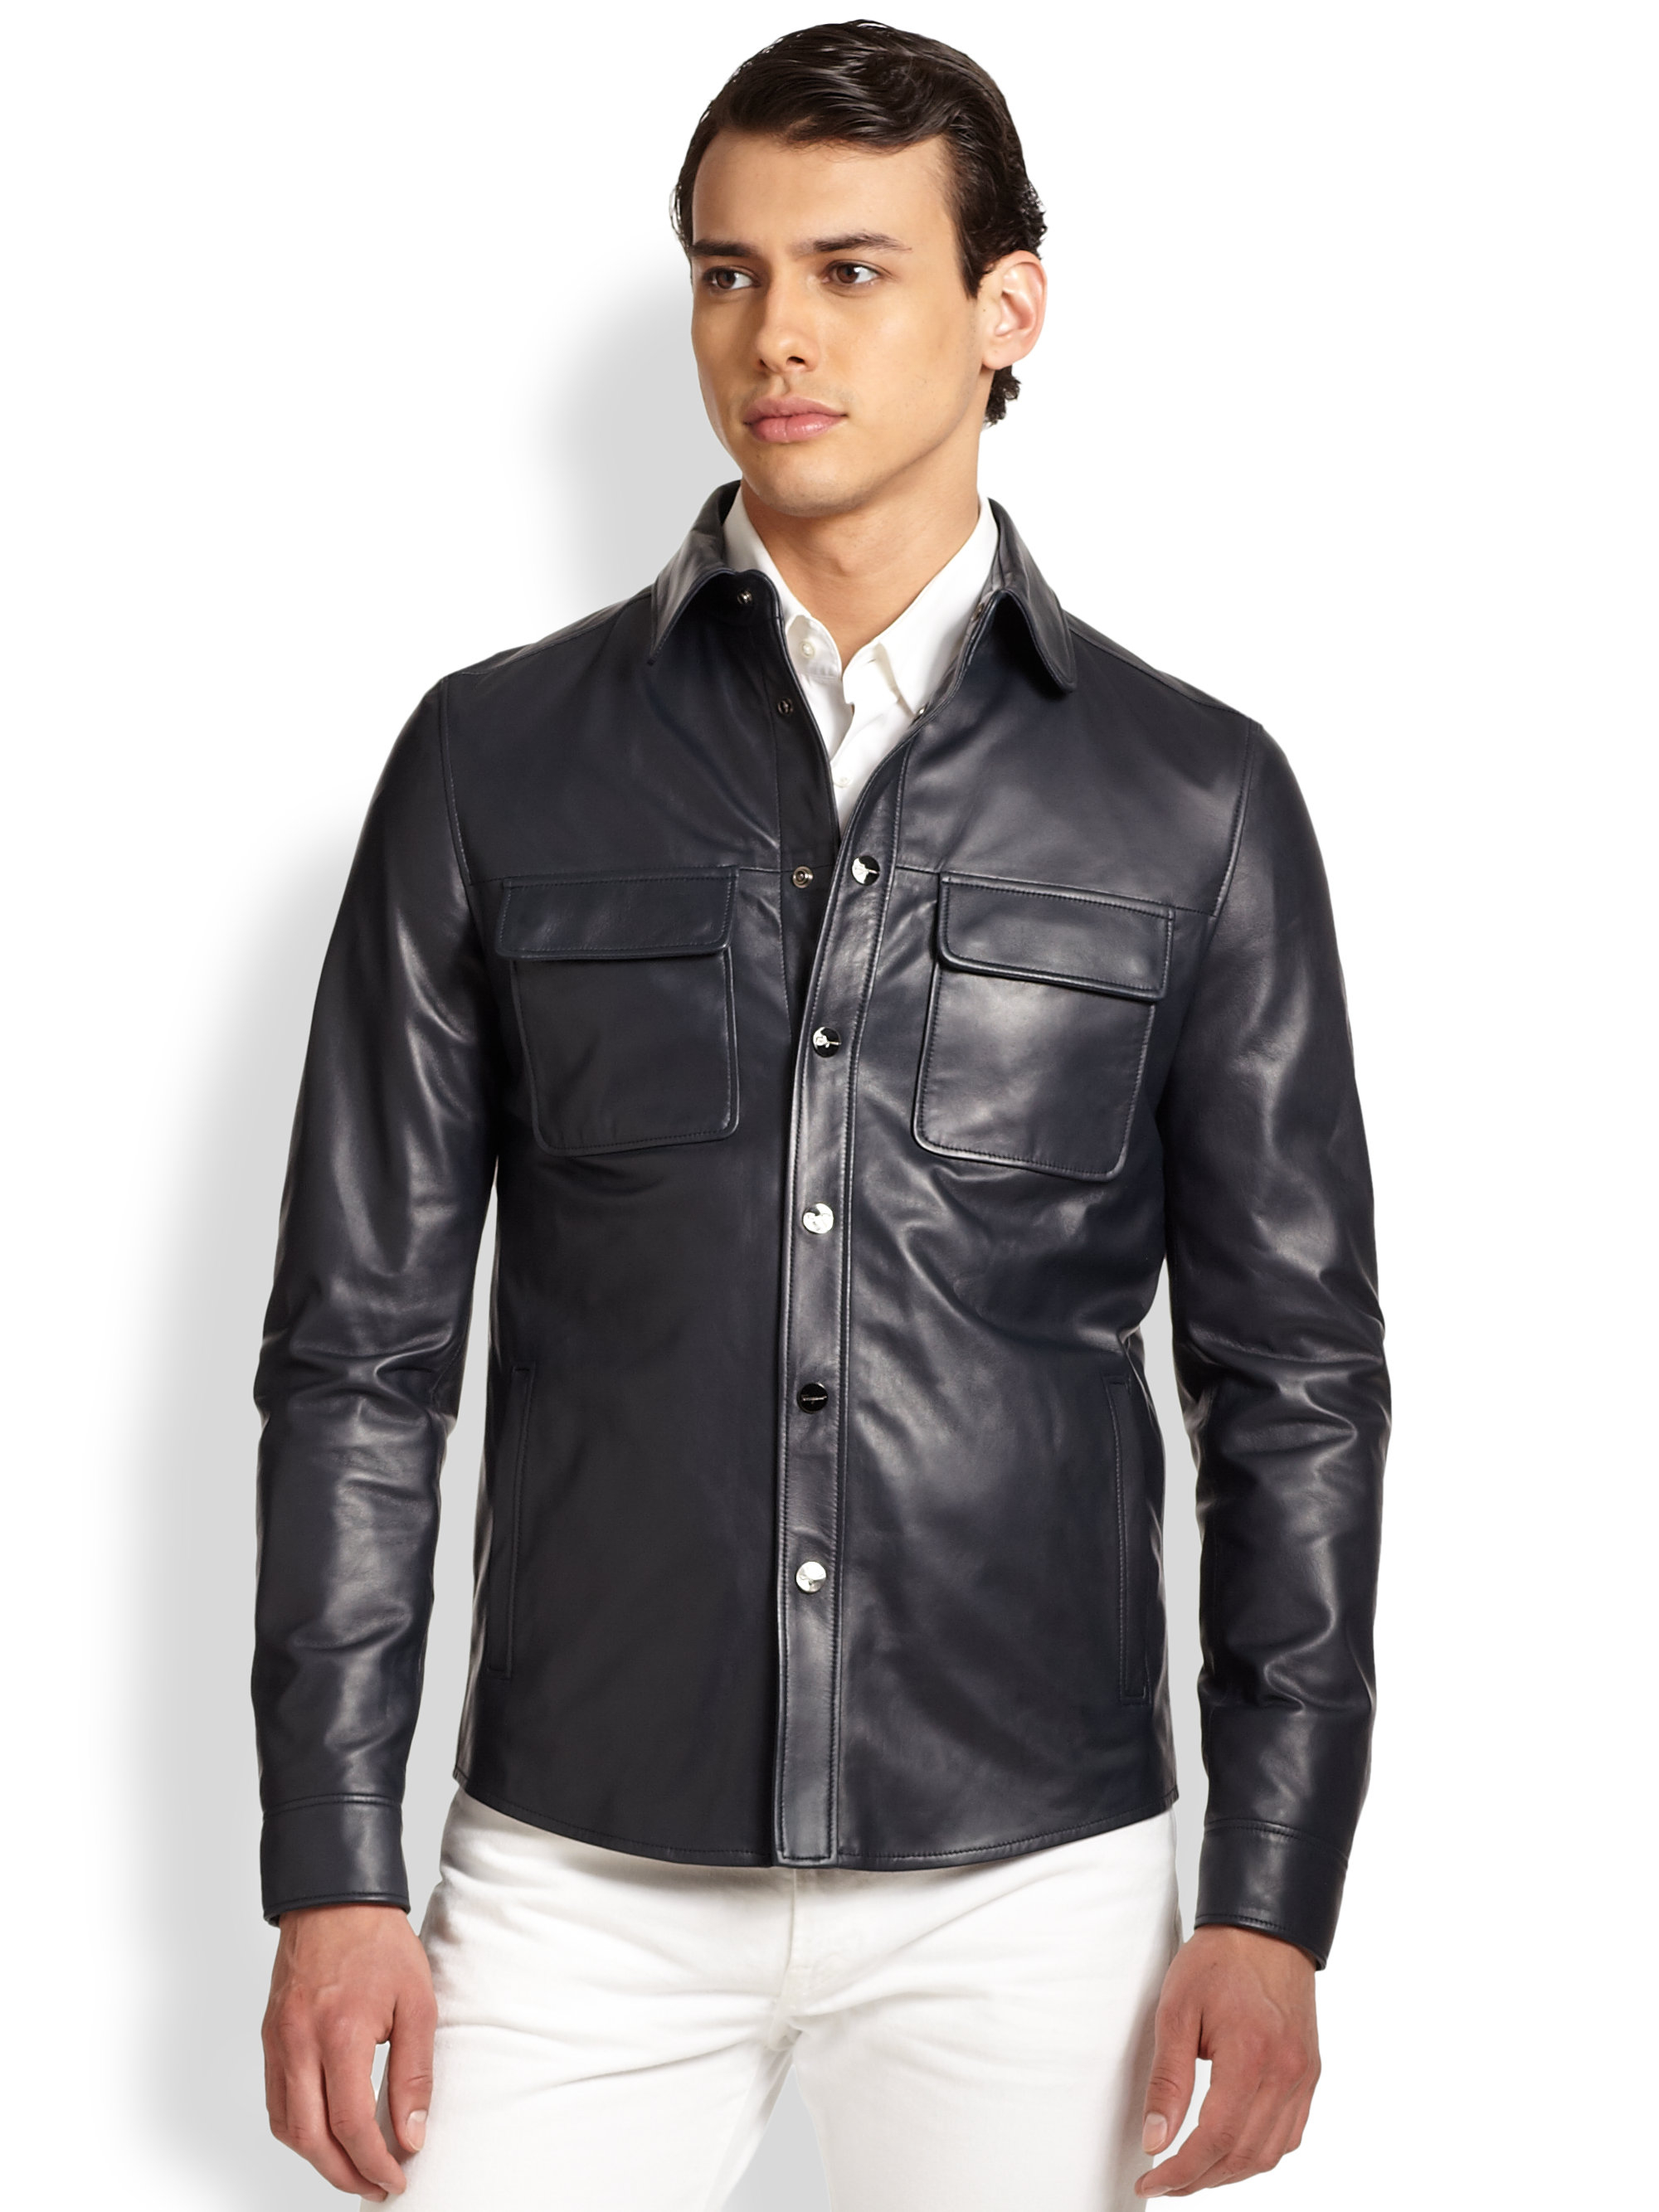 Ferragamo leather shirt jacket in black for men lyst for Leather jacket and shirt